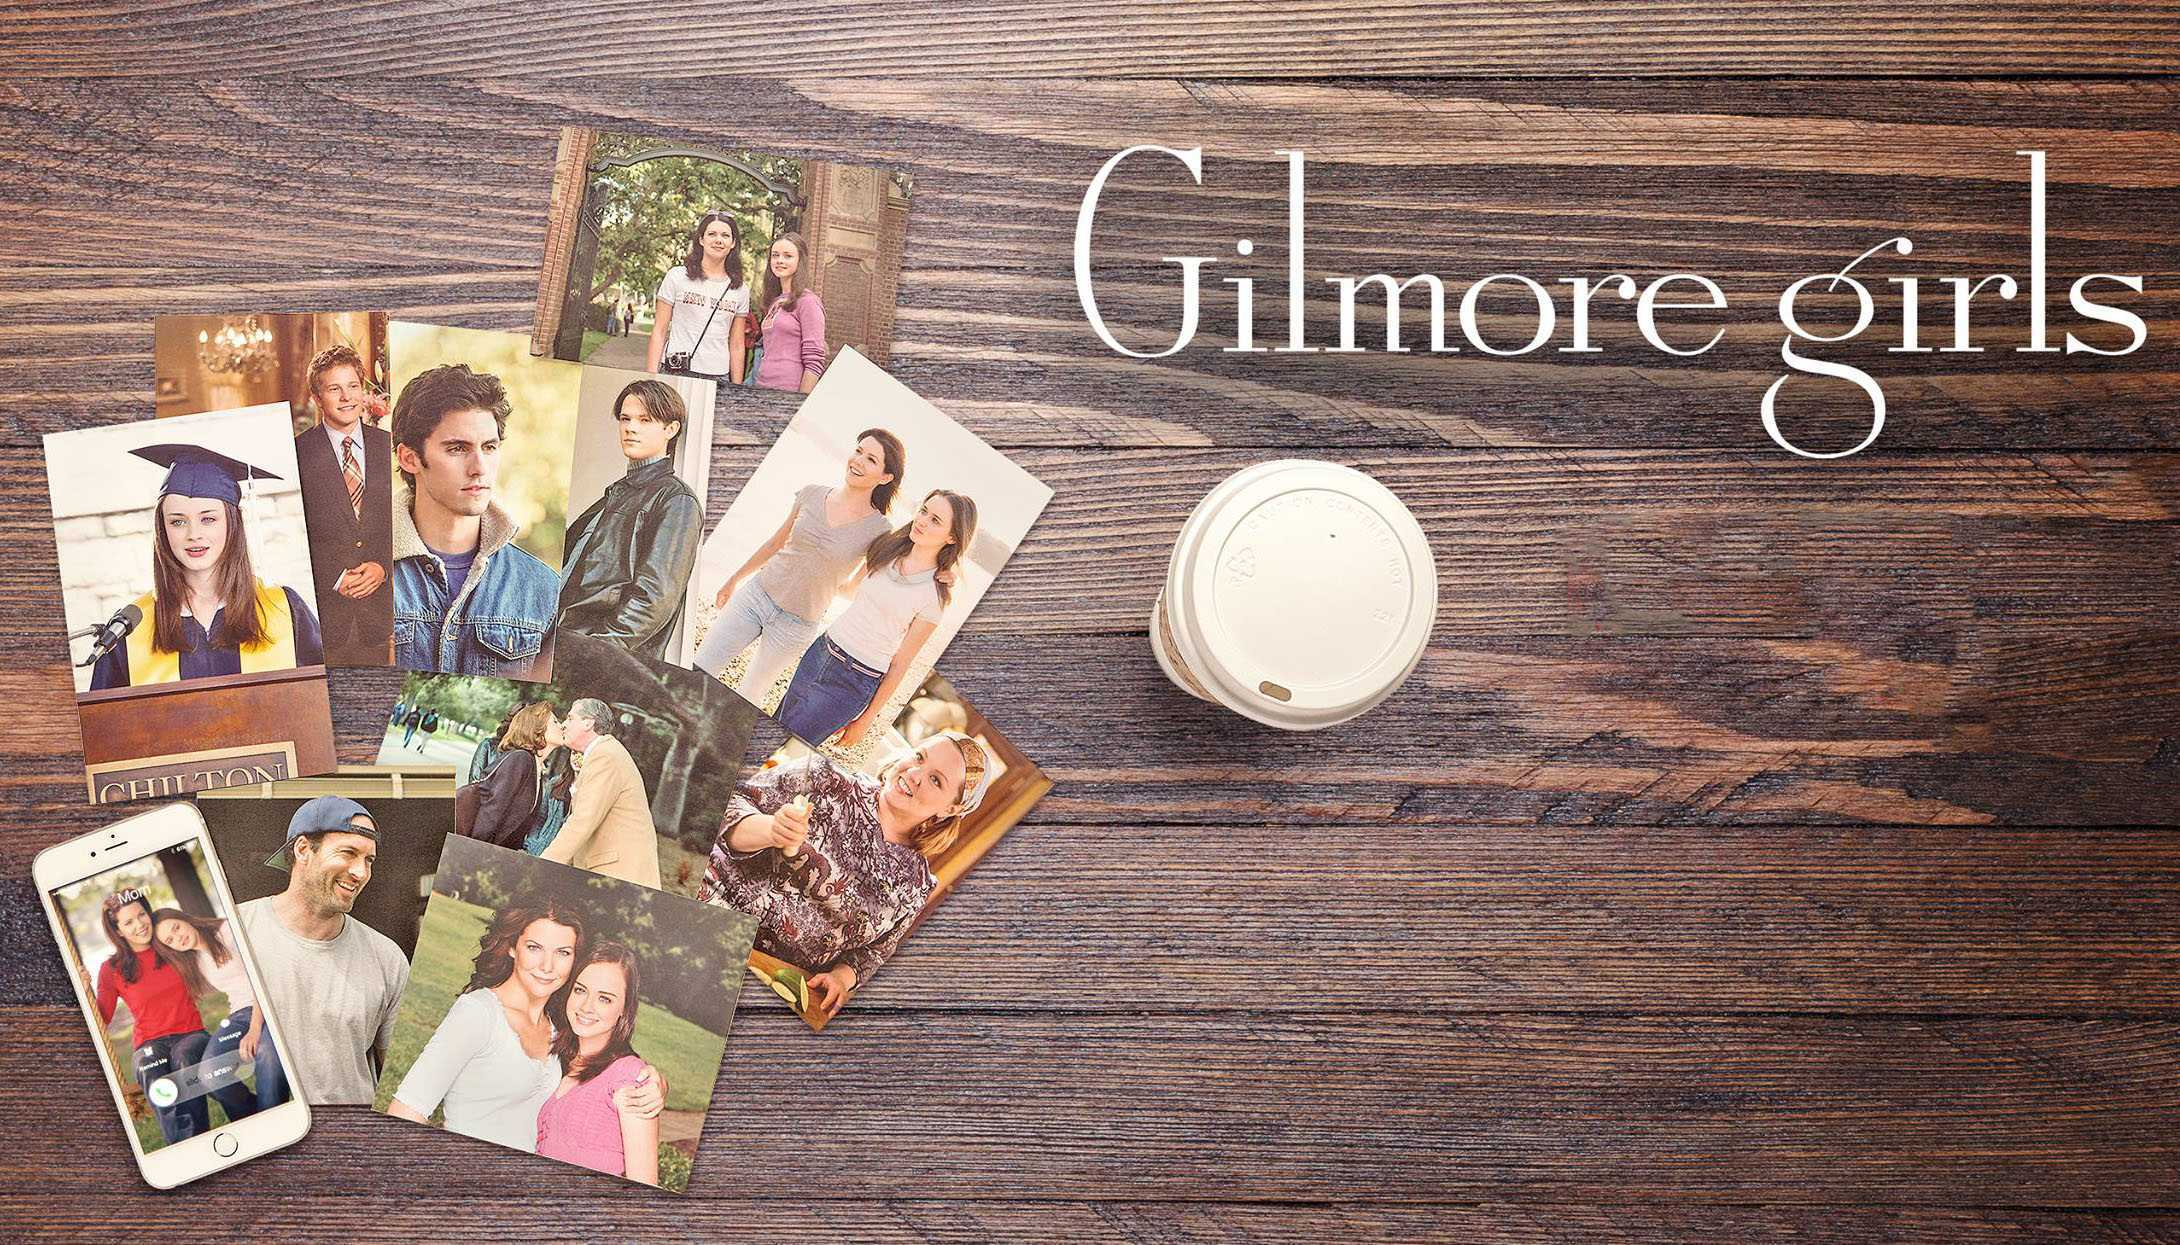 WSN talk about their favorite Gilmore Girls episodes.